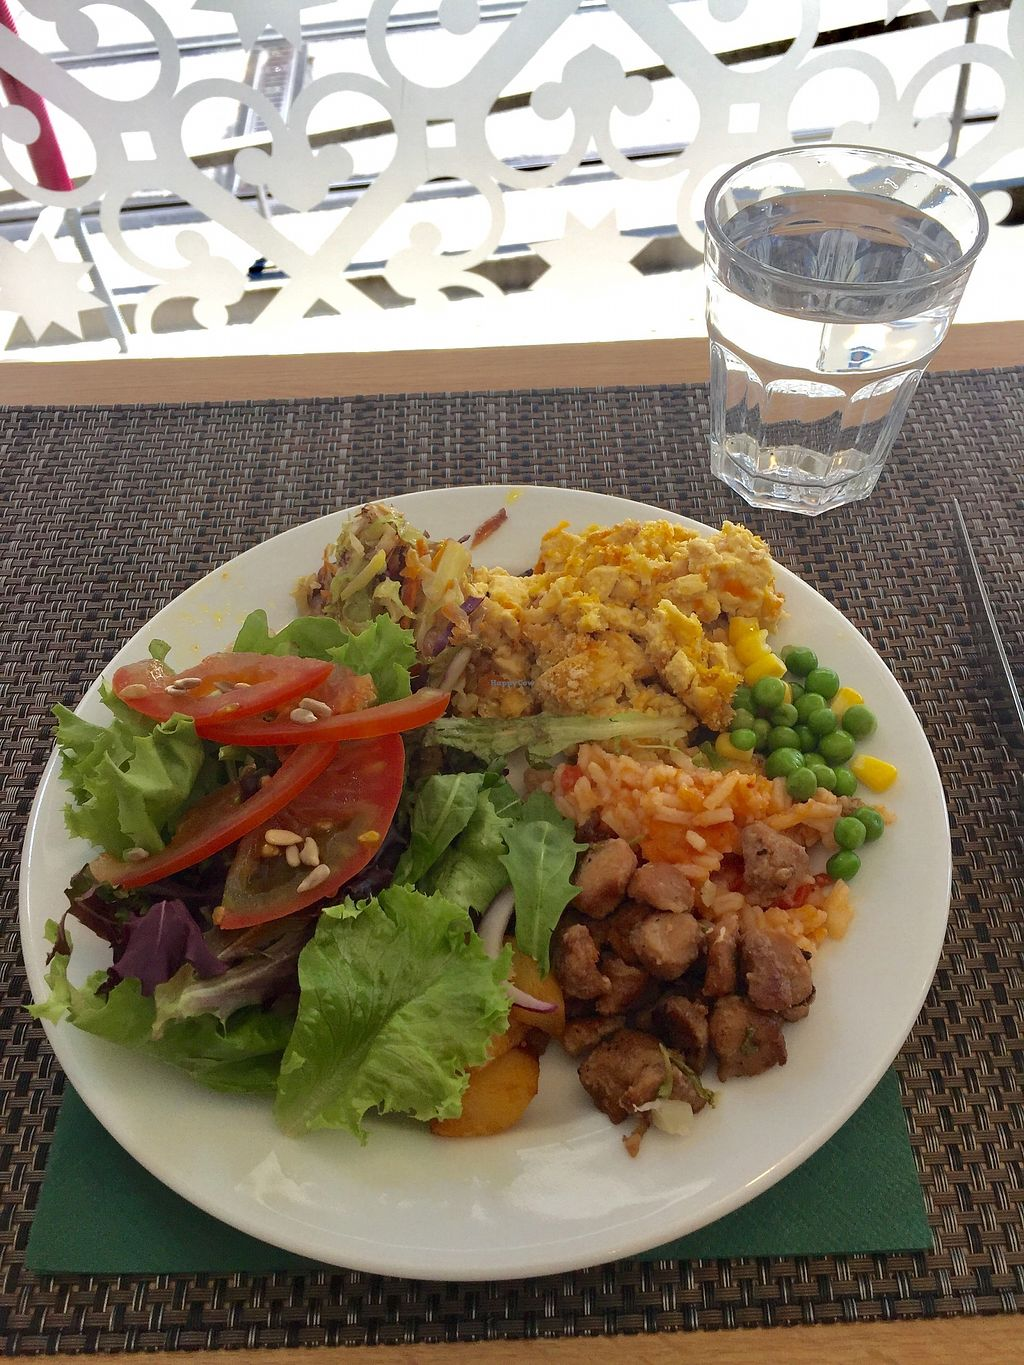 "Photo of Cultura Dos Sabores  by <a href=""/members/profile/JennieRDS"">JennieRDS</a> <br/>Spiritual tofu, soya bites, roasted mixed veg, salad, tomato rice, peas and corn <br/> July 7, 2017  - <a href='/contact/abuse/image/47818/277449'>Report</a>"